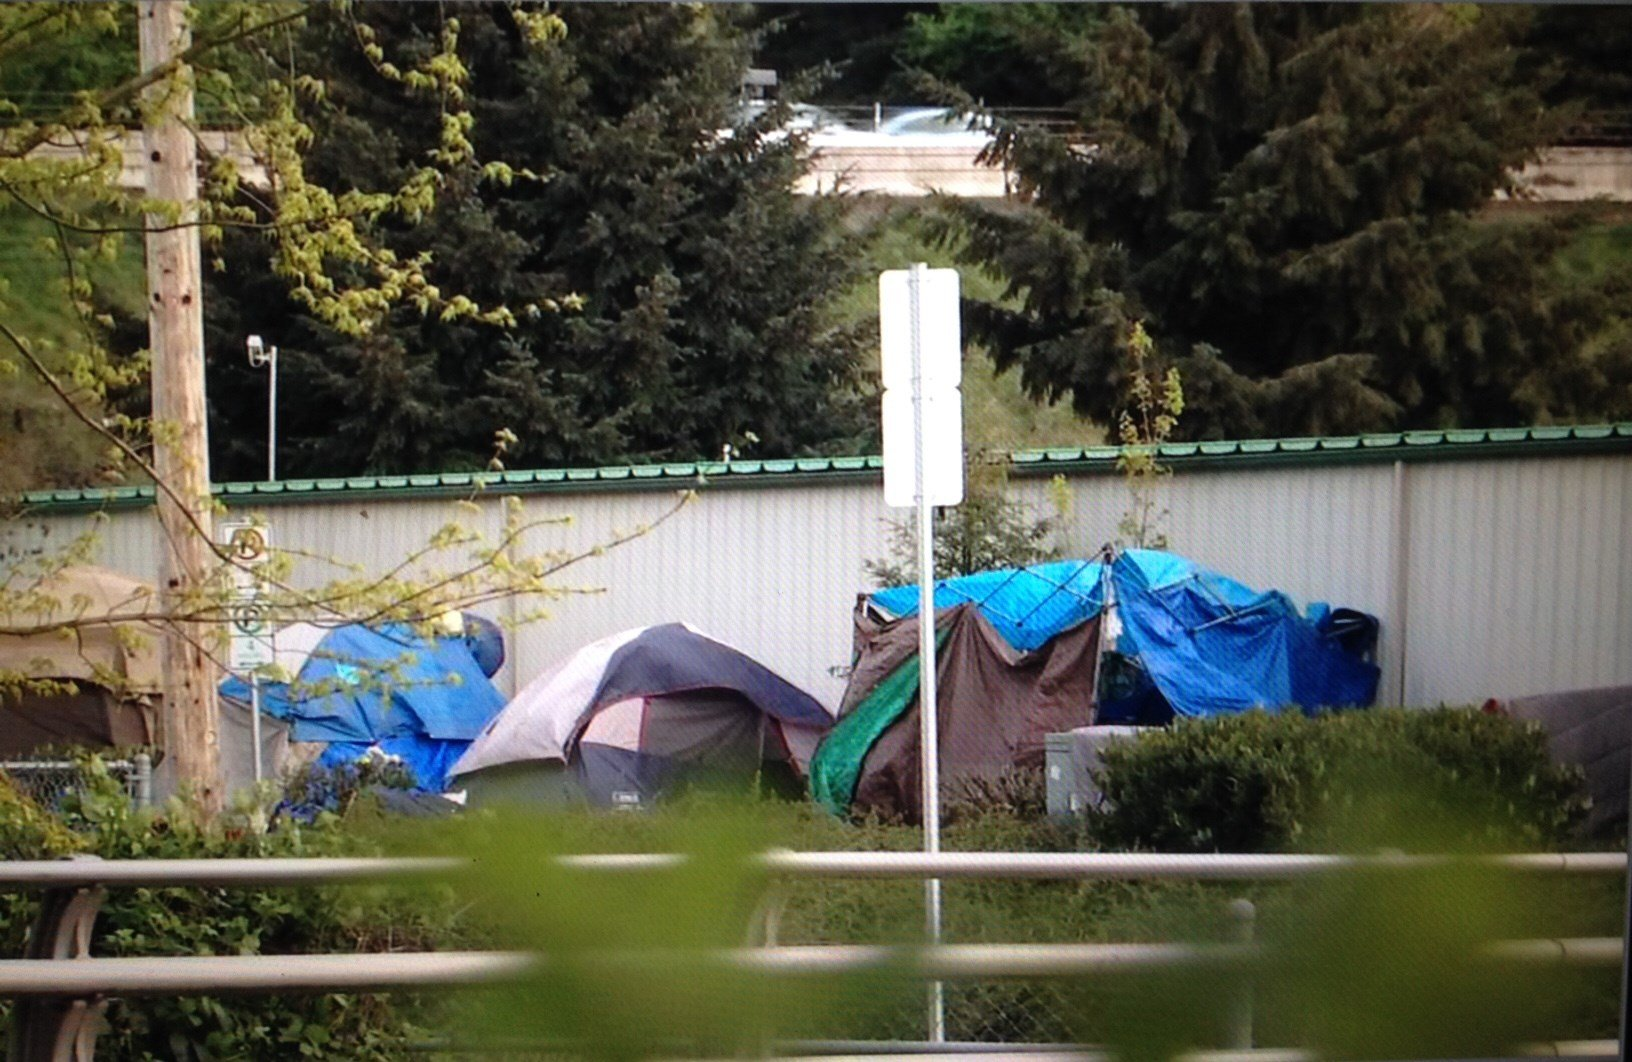 The camp near SE 92nd and Flavel.